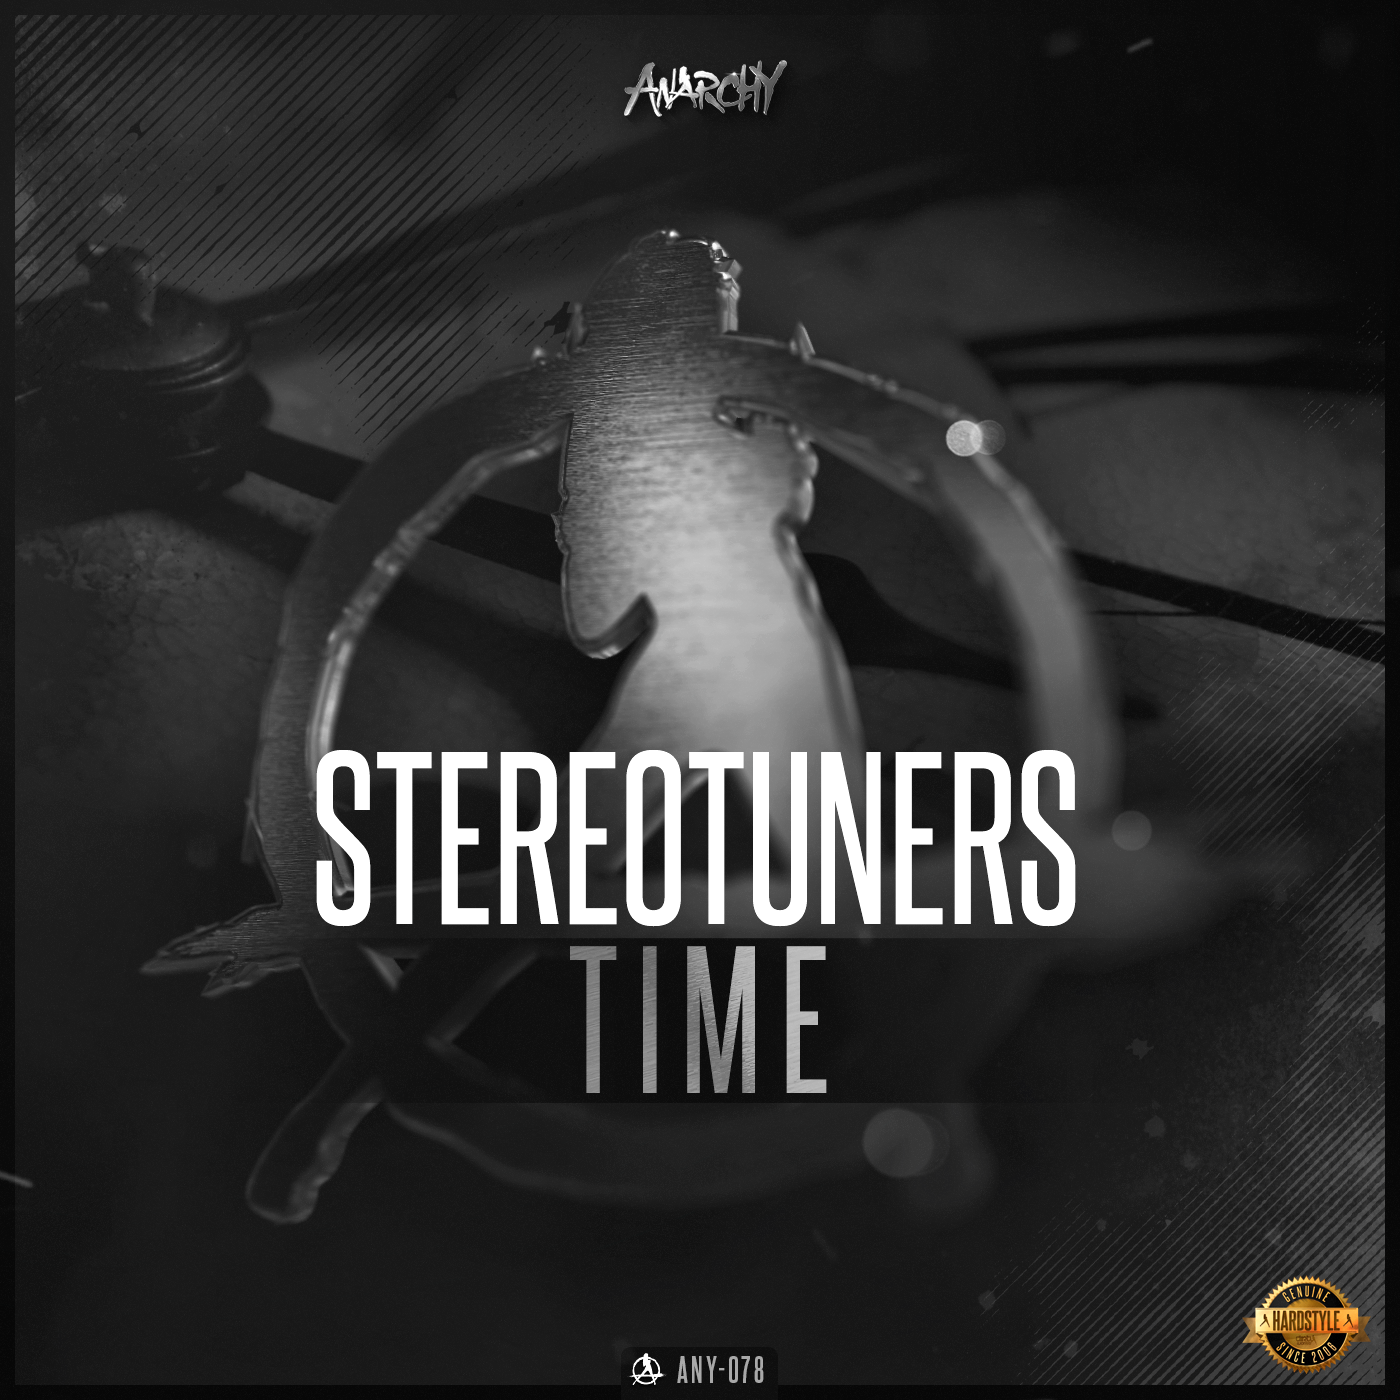 Stereotuners - Time [ANARCHY] ANY078